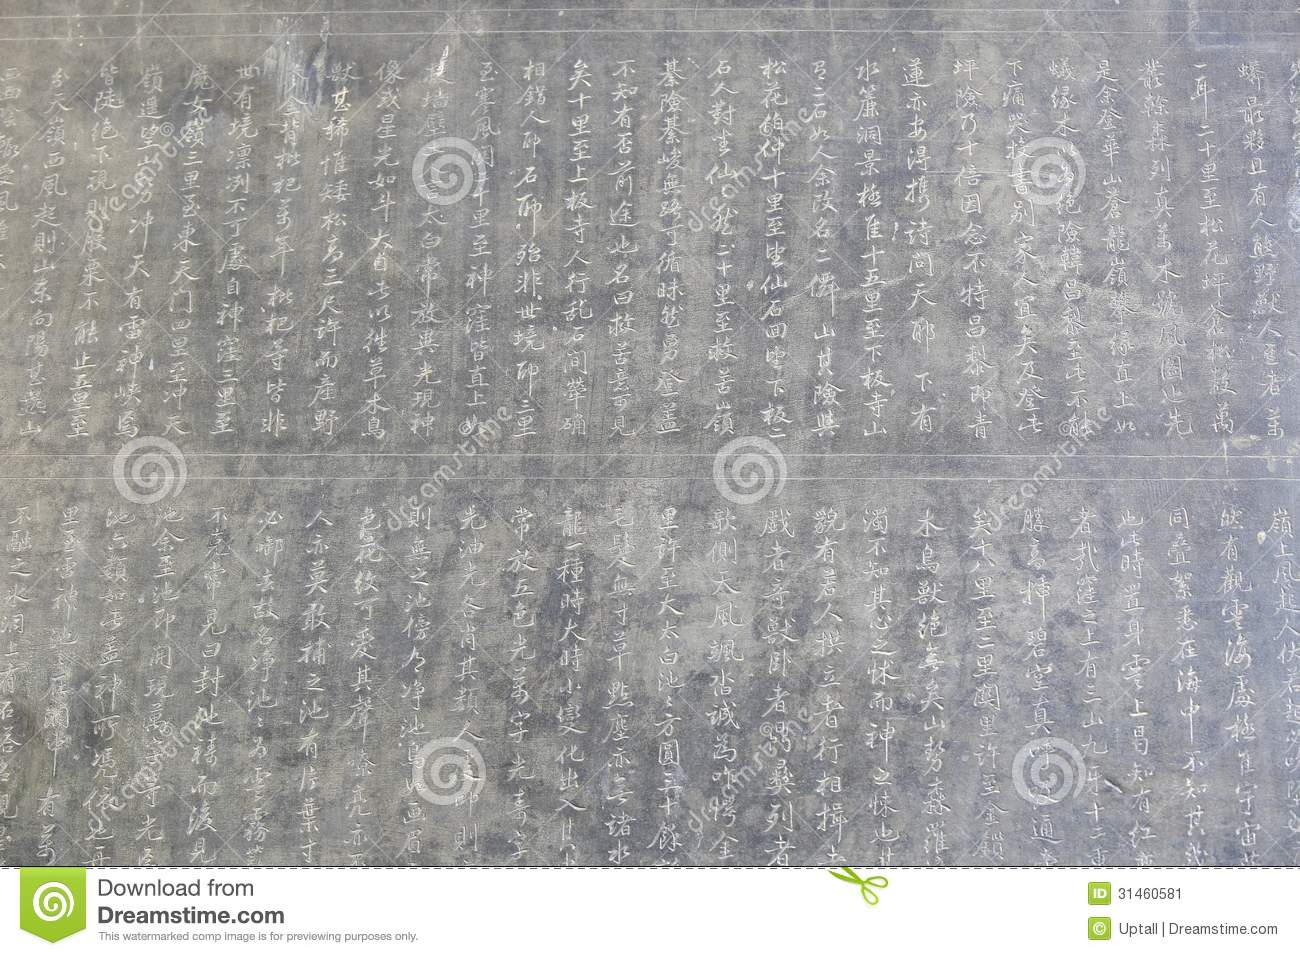 Ancient chinese calligraphy art stock image image 31460581 Calligraphy ancient china